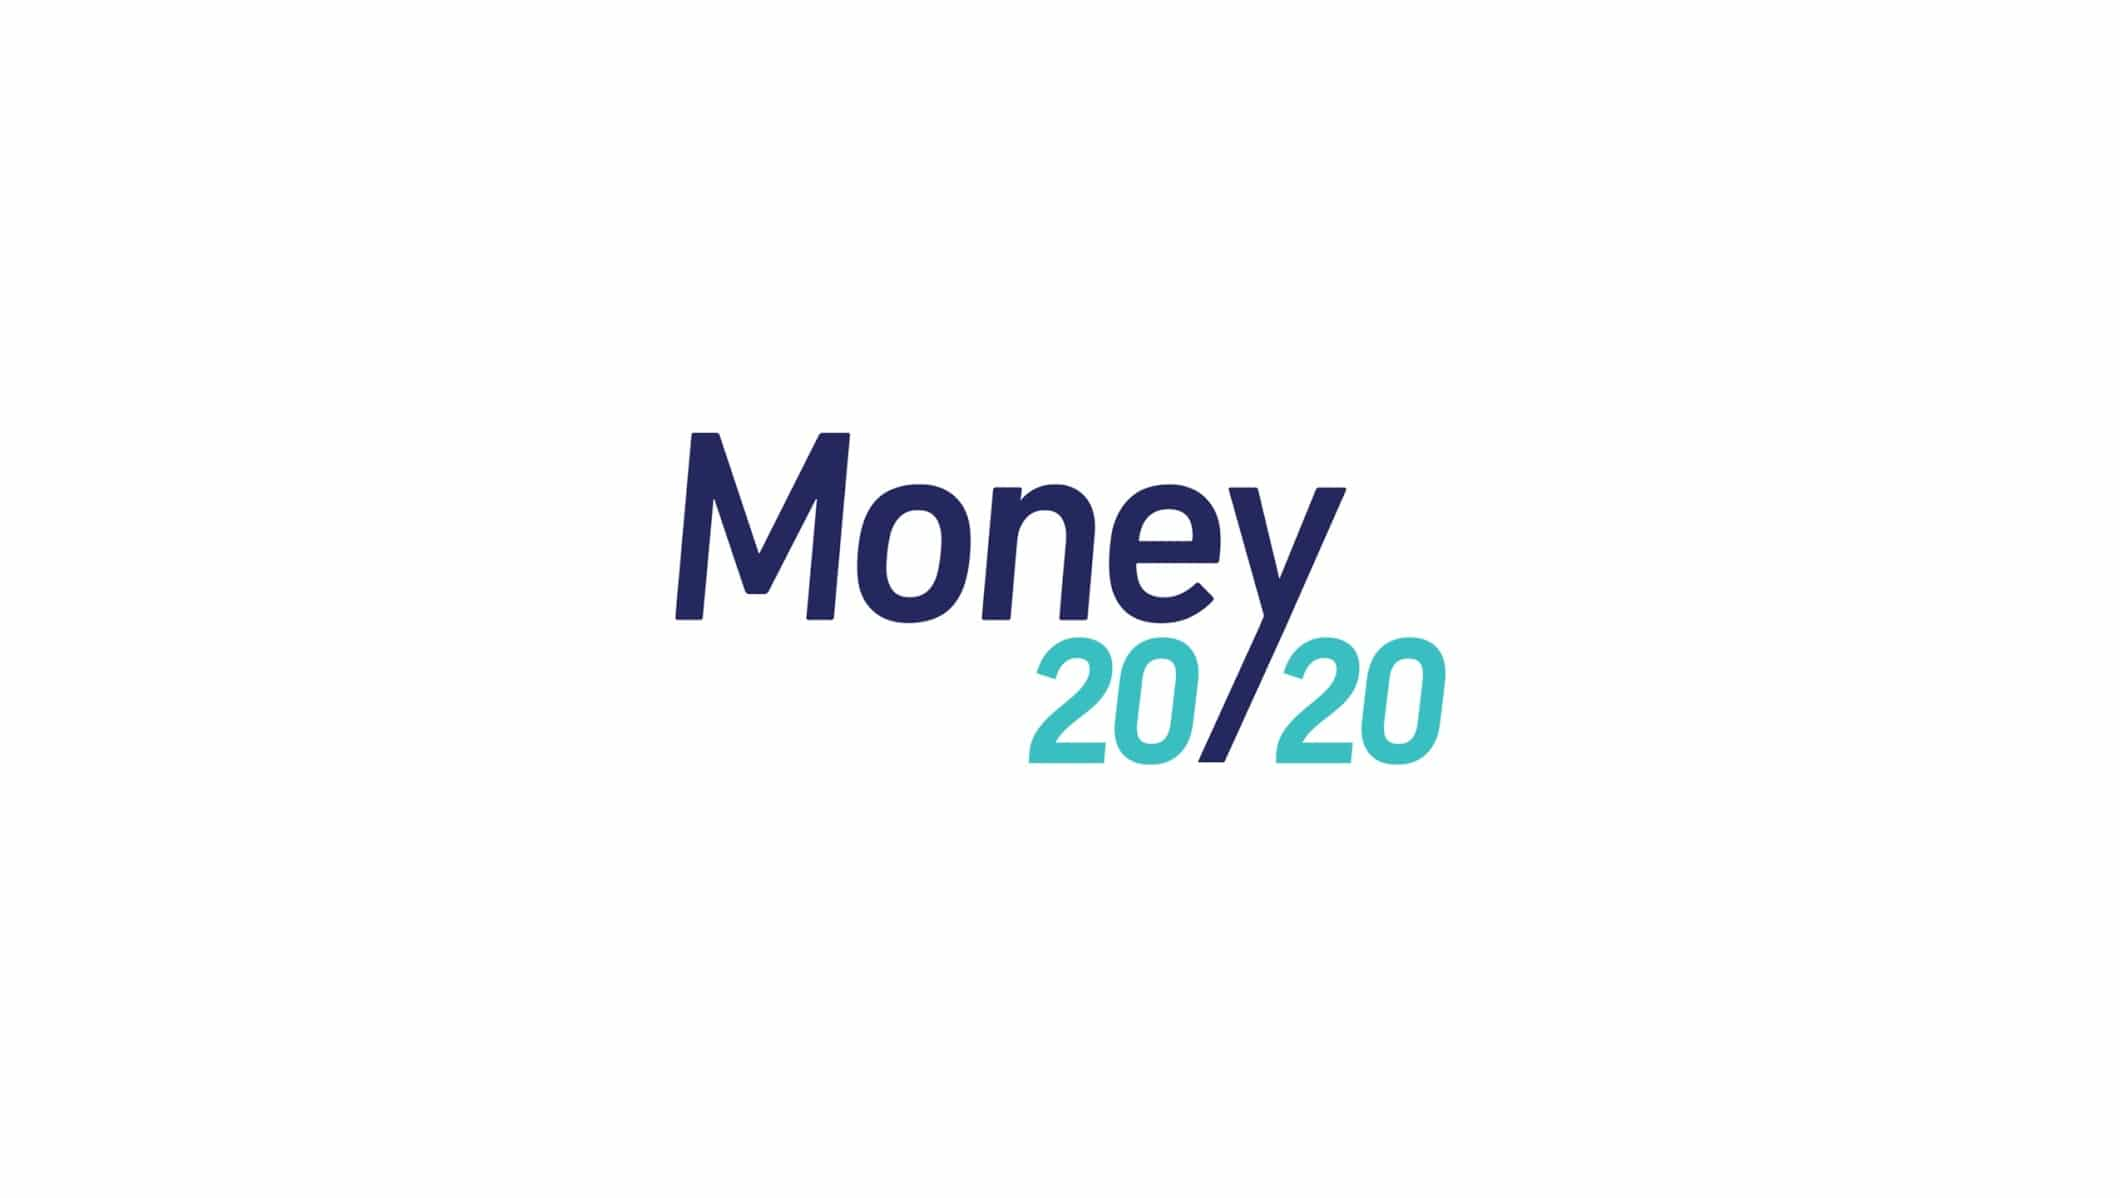 Money20/20 Europe announces its new event in September